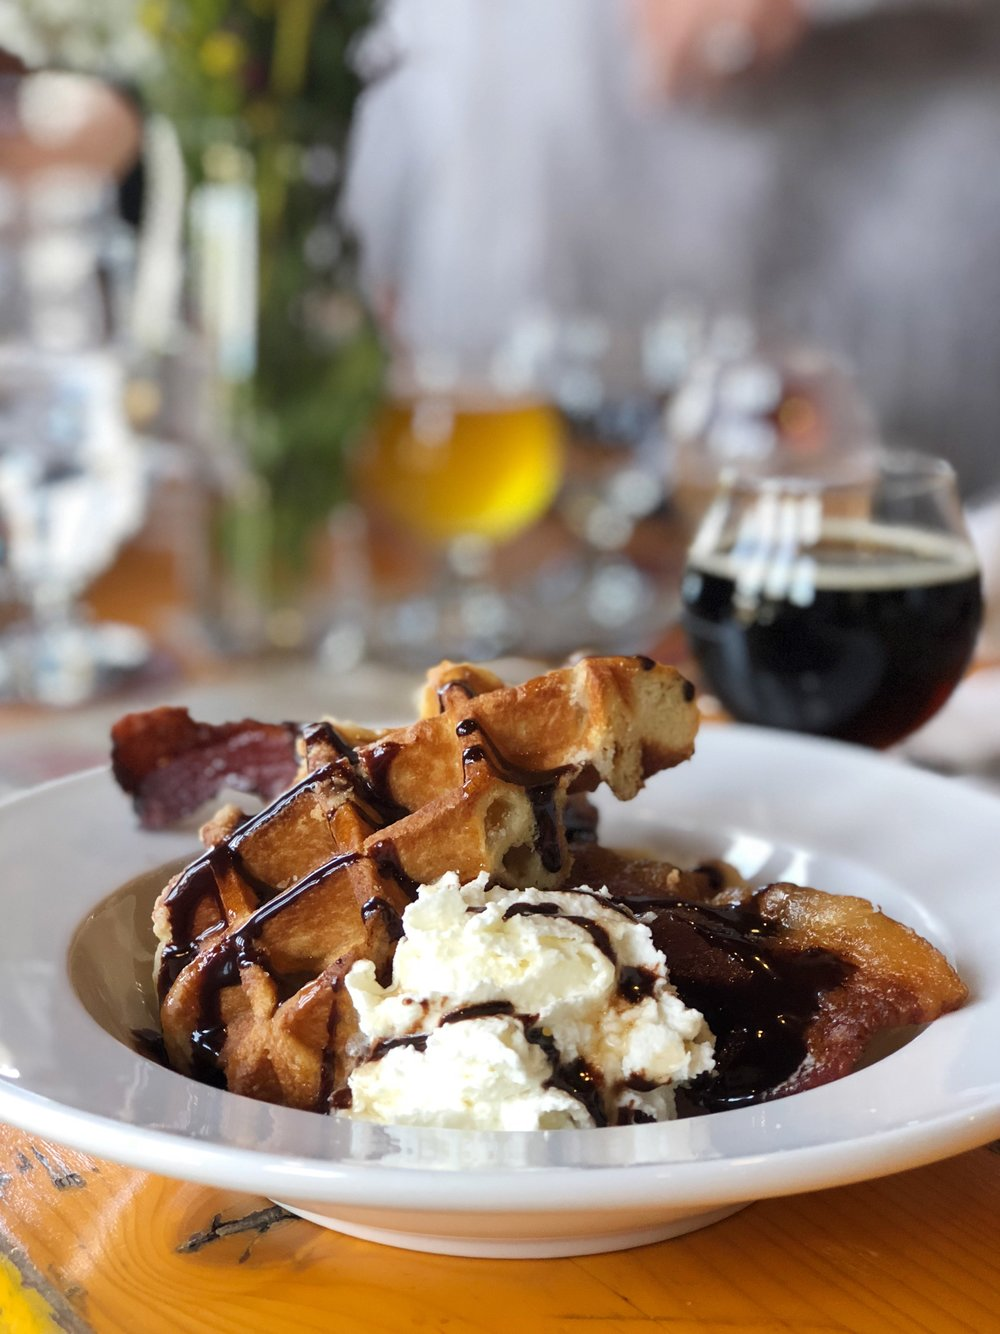 legion-brewing-brunch-and-brews-maple-canyon-waffle